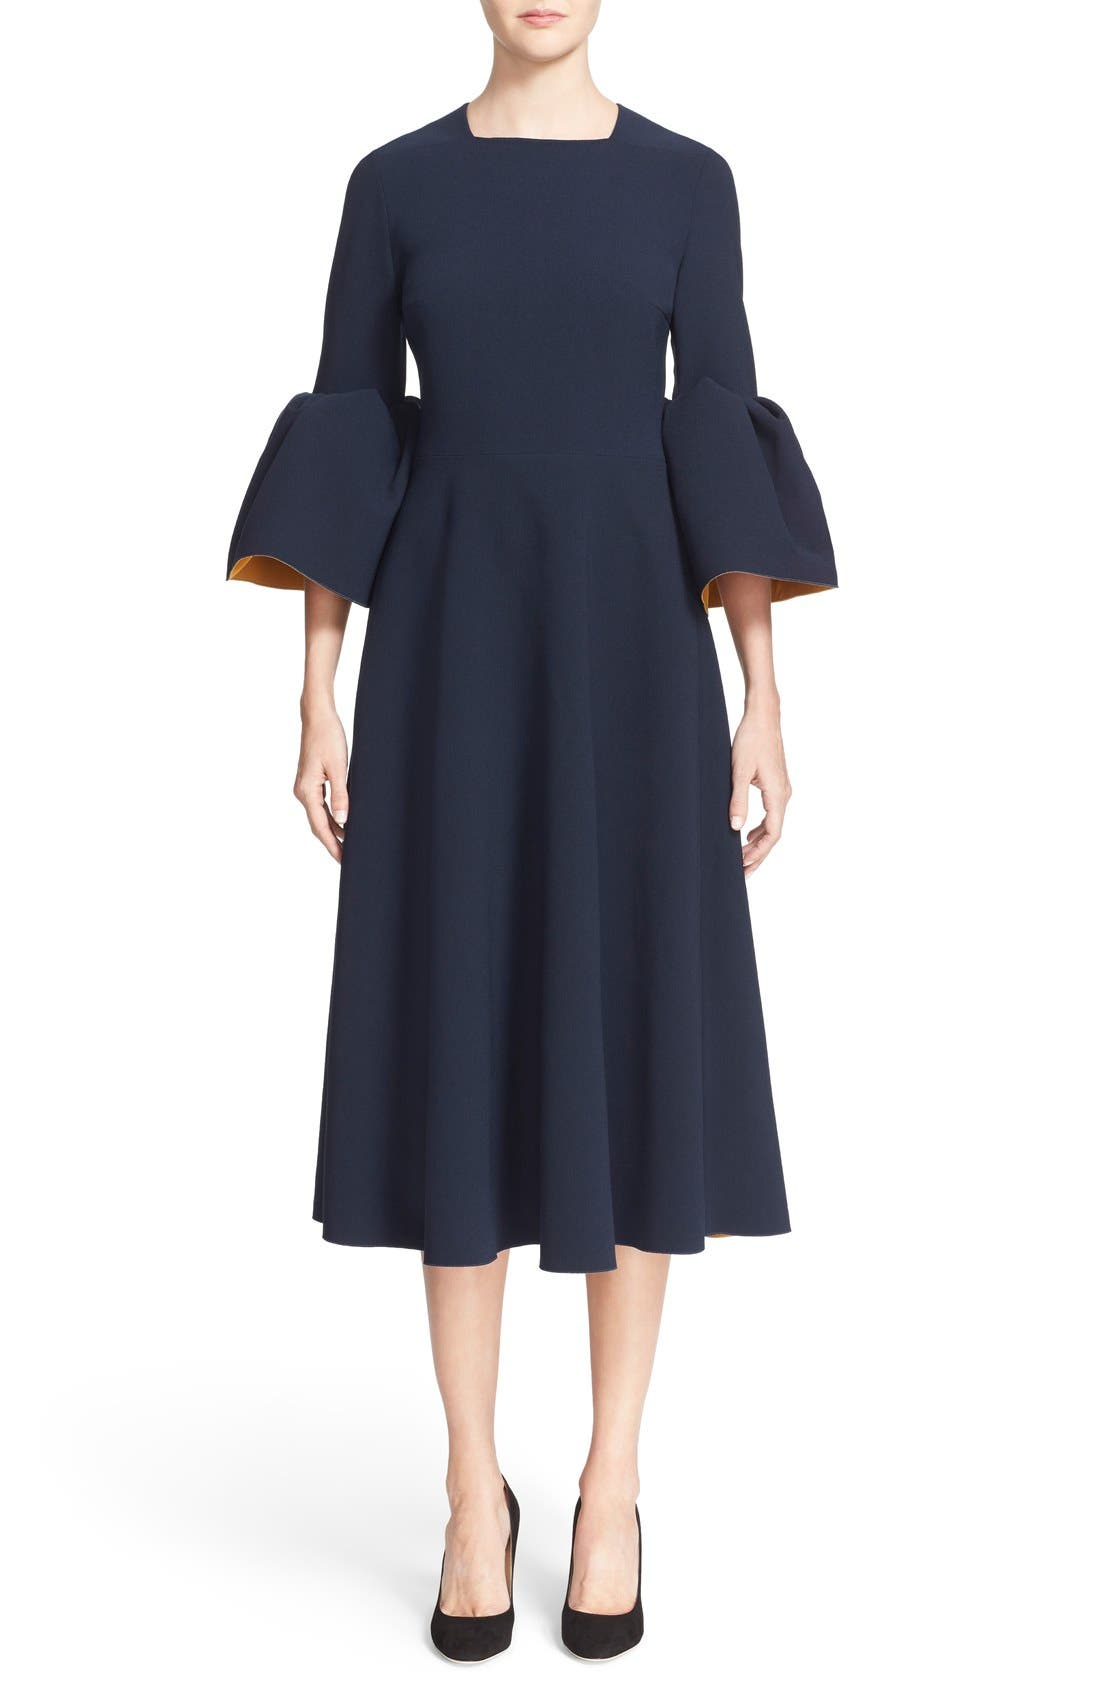 Turlin Flounce Sleeve Midi Dress,                             Main thumbnail 1, color,                             Navy/ Ochre